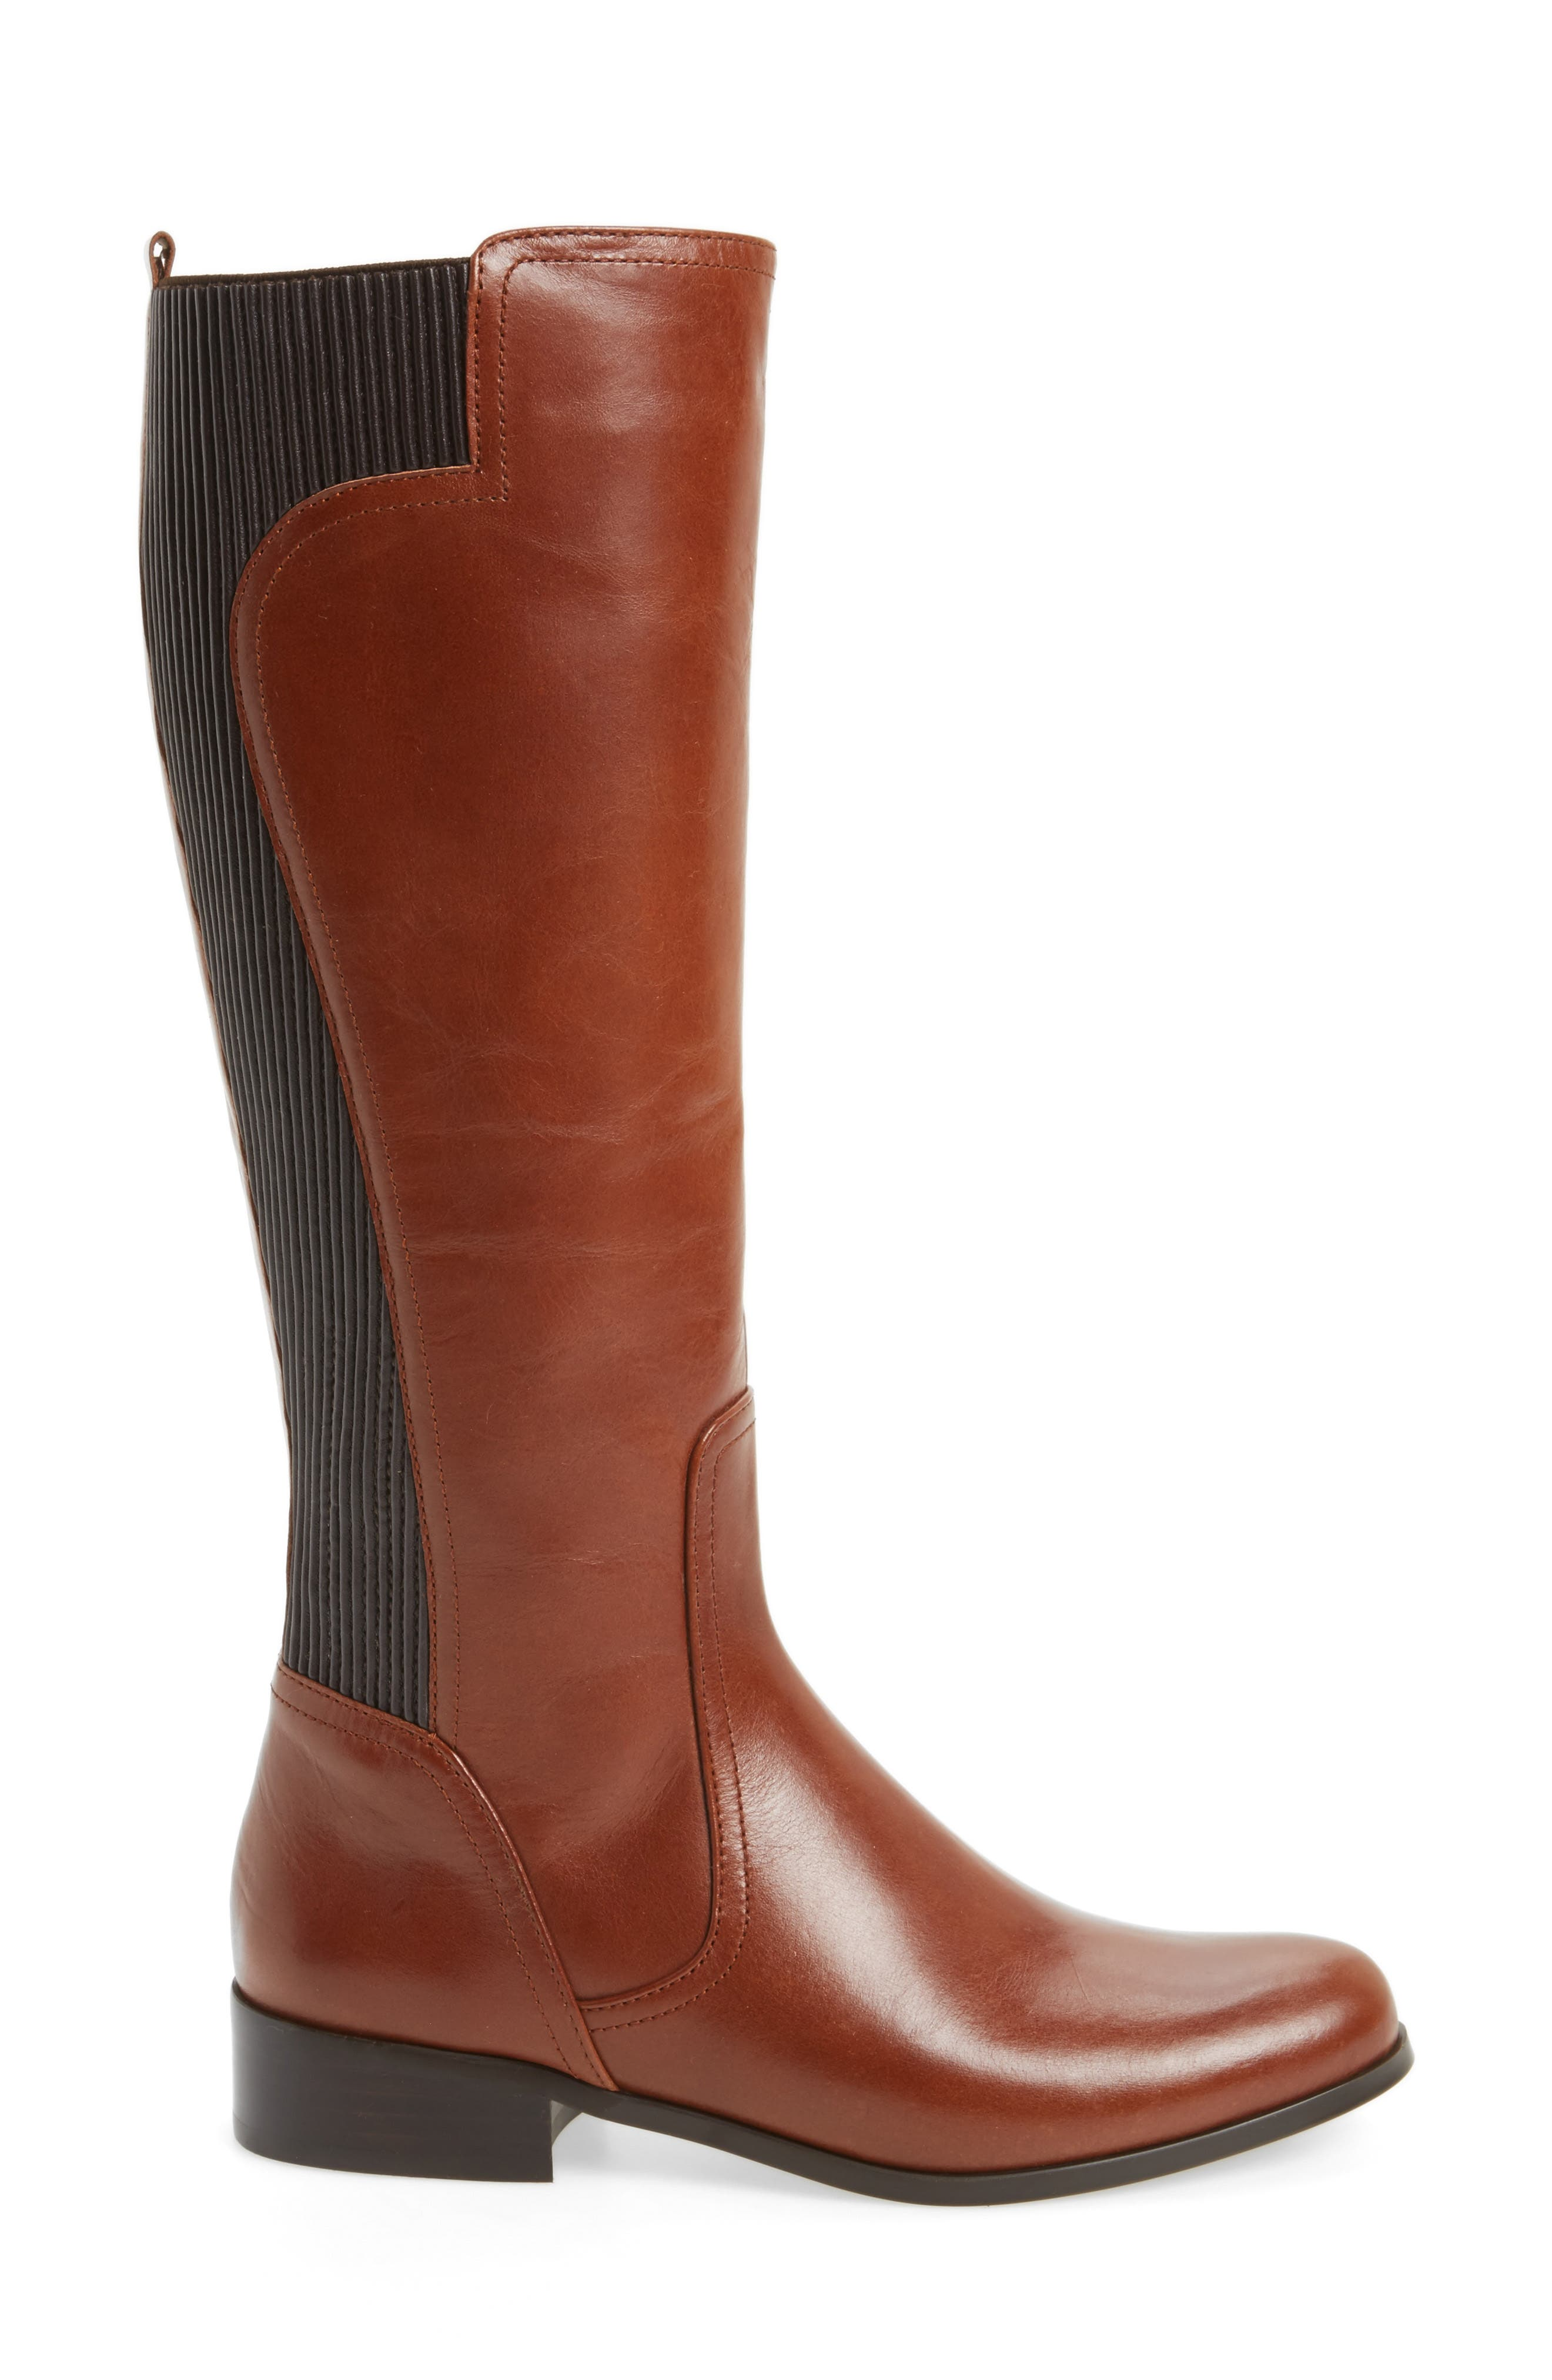 Rebel Tall Boot,                             Alternate thumbnail 3, color,                             Tan Leather